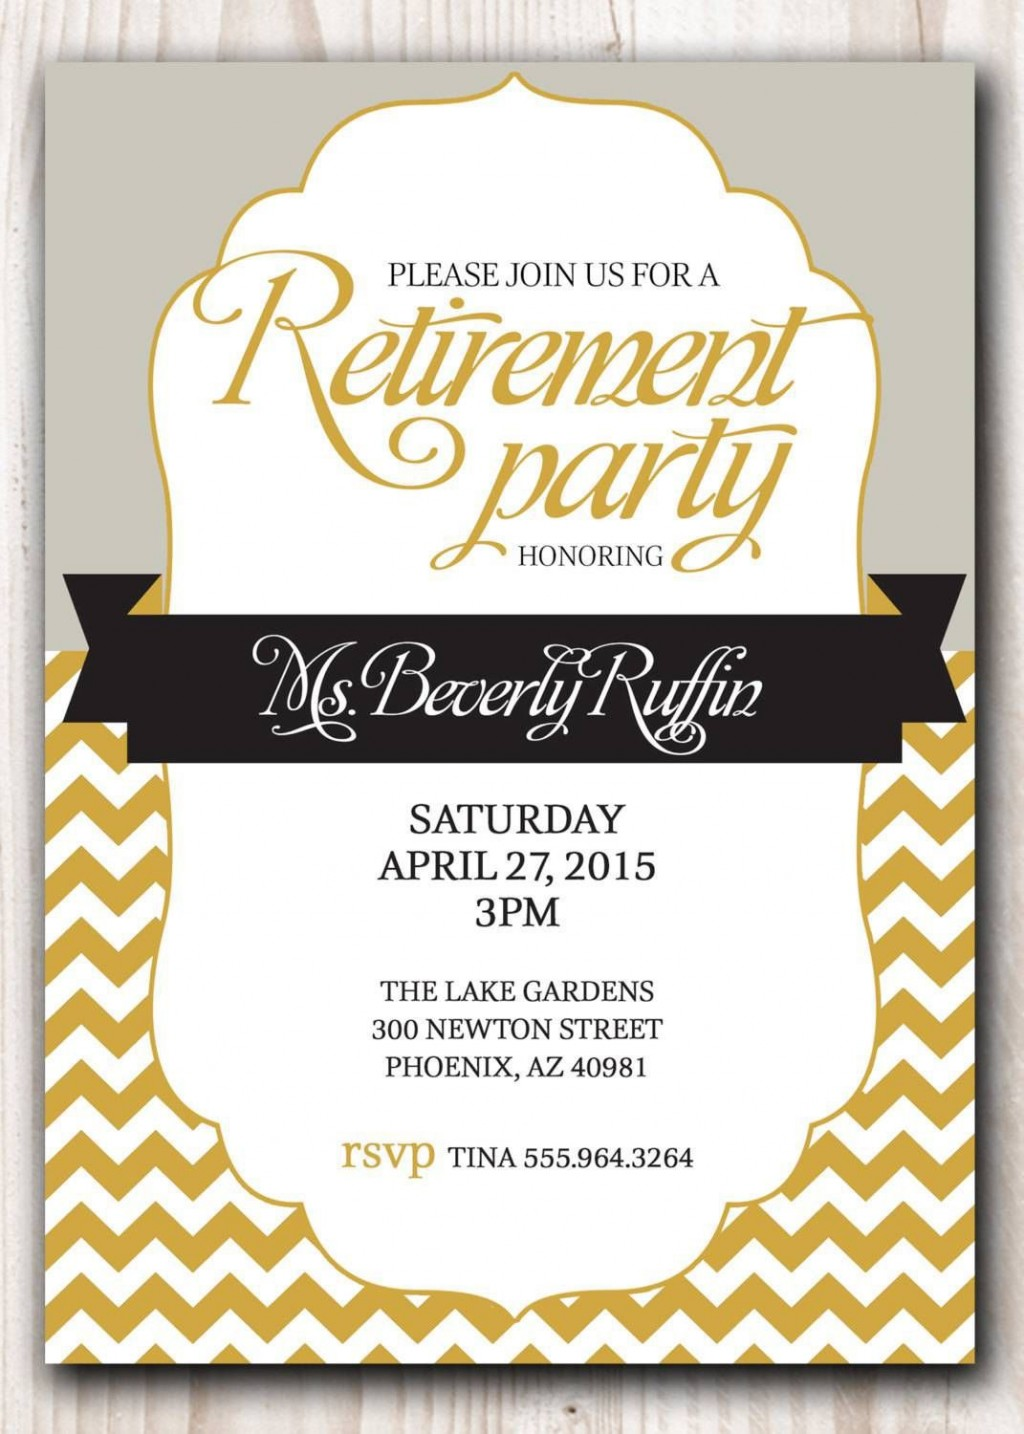 004 Stupendou Free Retirement Invitation Template Example  Templates Microsoft Word Party FlyerLarge